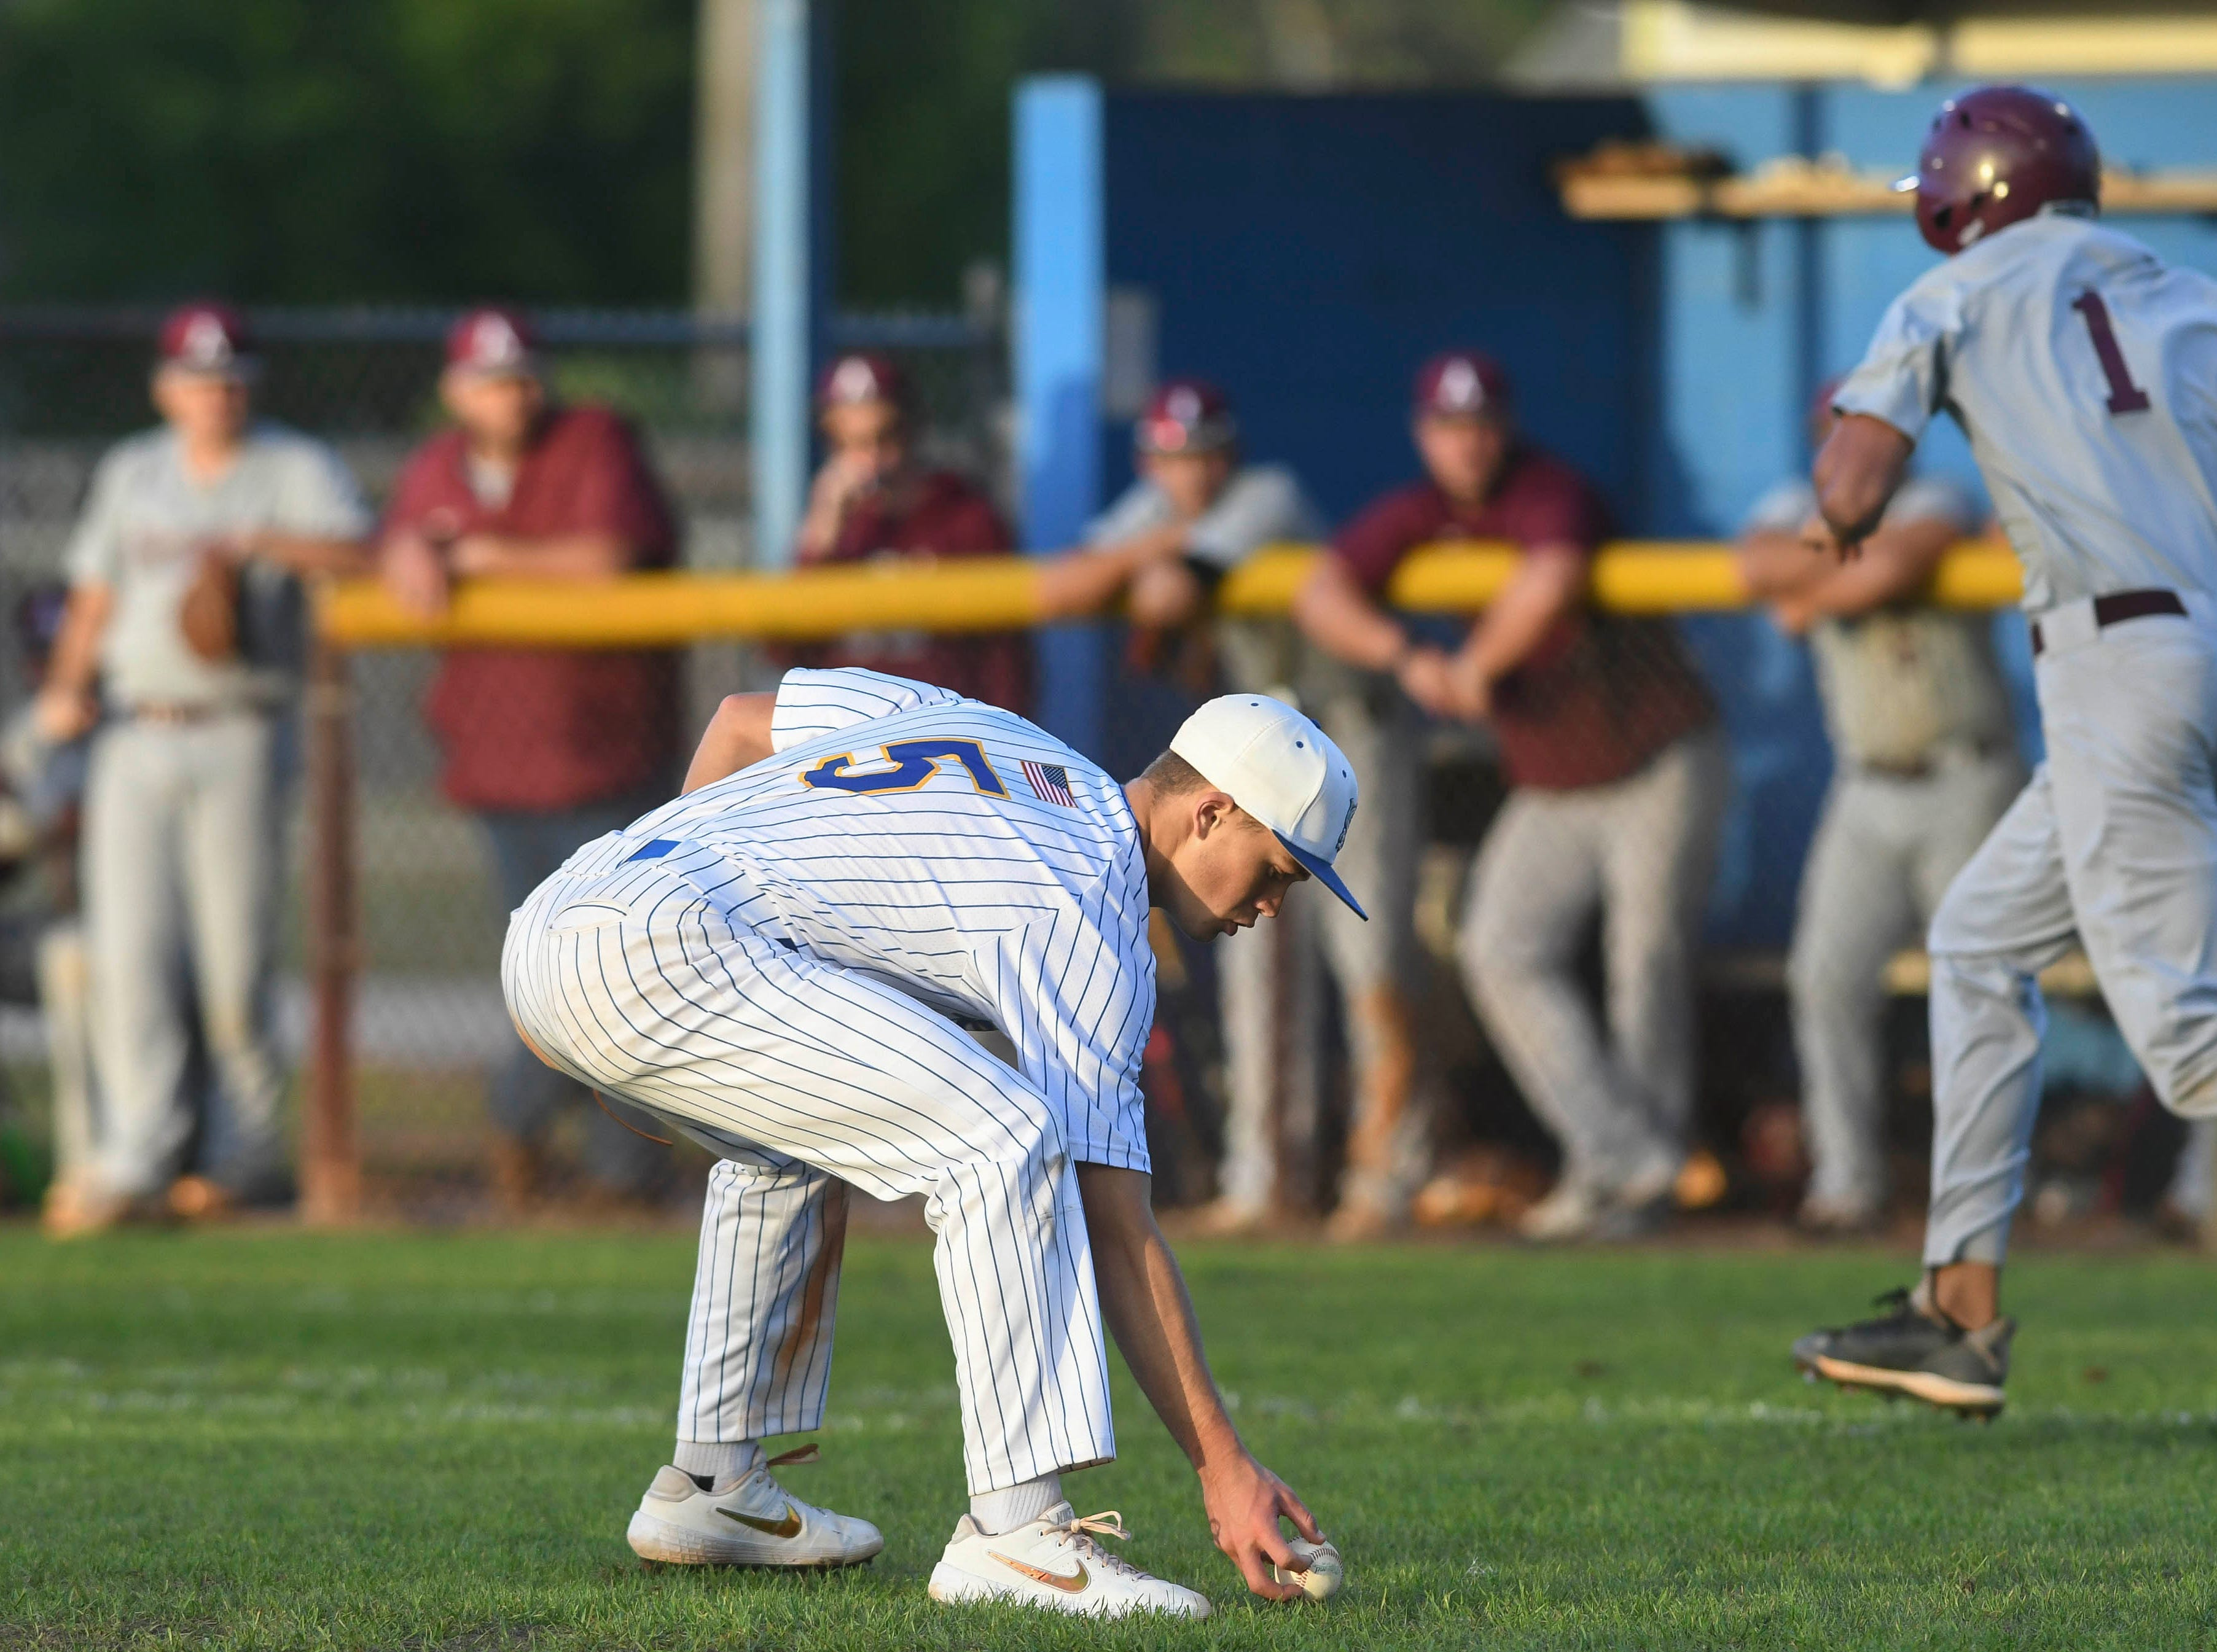 Titusville pitcher Jackson Woodward prepares to throw out Astronaut baserunner Daymon Woodraff during Thursday's game in Titusville.